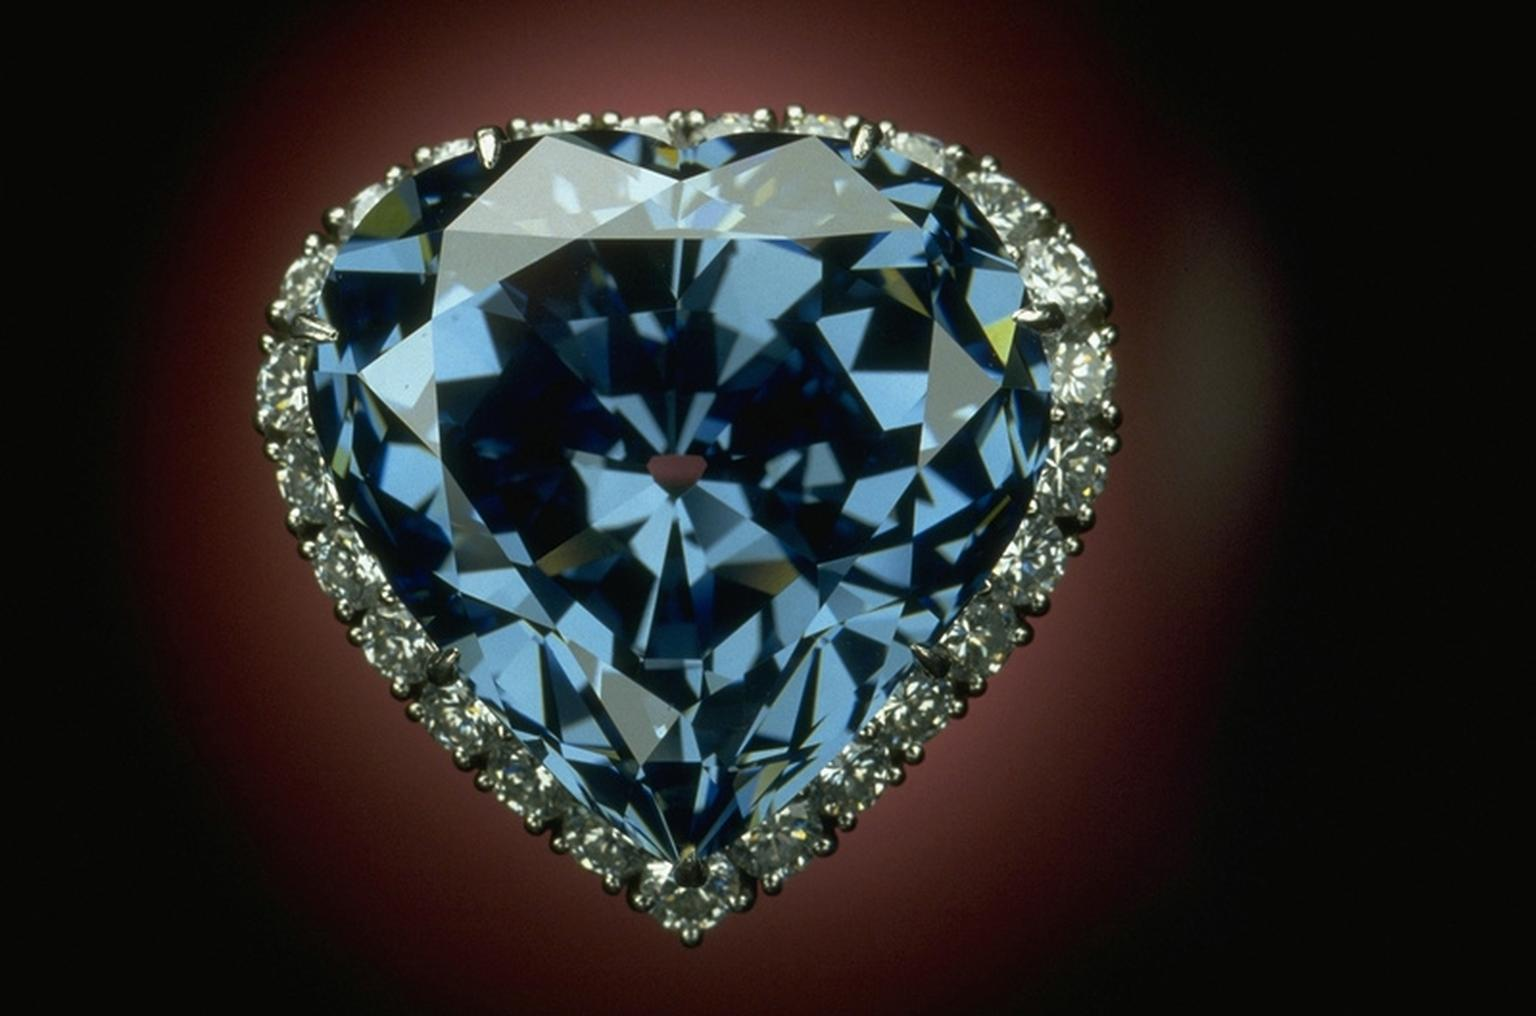 The 30.62ct Blue Heart diamond, part of the Smithsonian National Gem collection, was originally faceted by French jeweller Atanik Eknayan in 1909-1910, and then set in its current platinum ring setting by Harry Winston in 1959. Photo credit: Chip Clark.